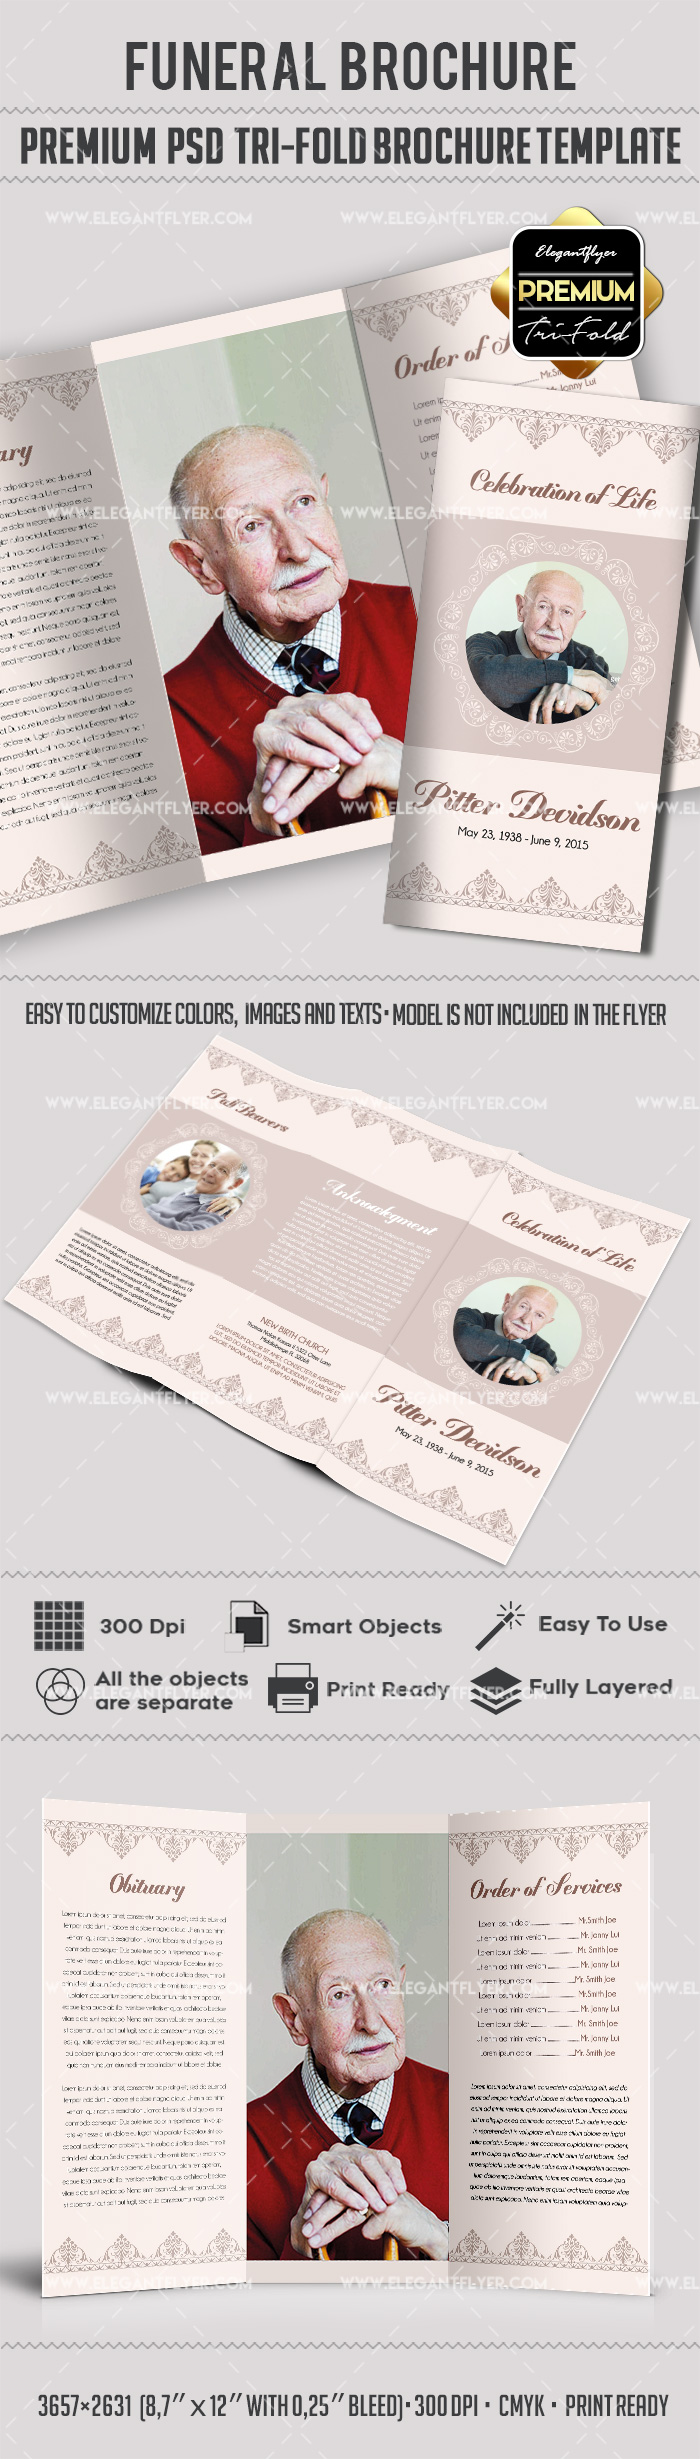 Tri fold funeral service brochure template by elegantflyer for Funeral brochure templates free